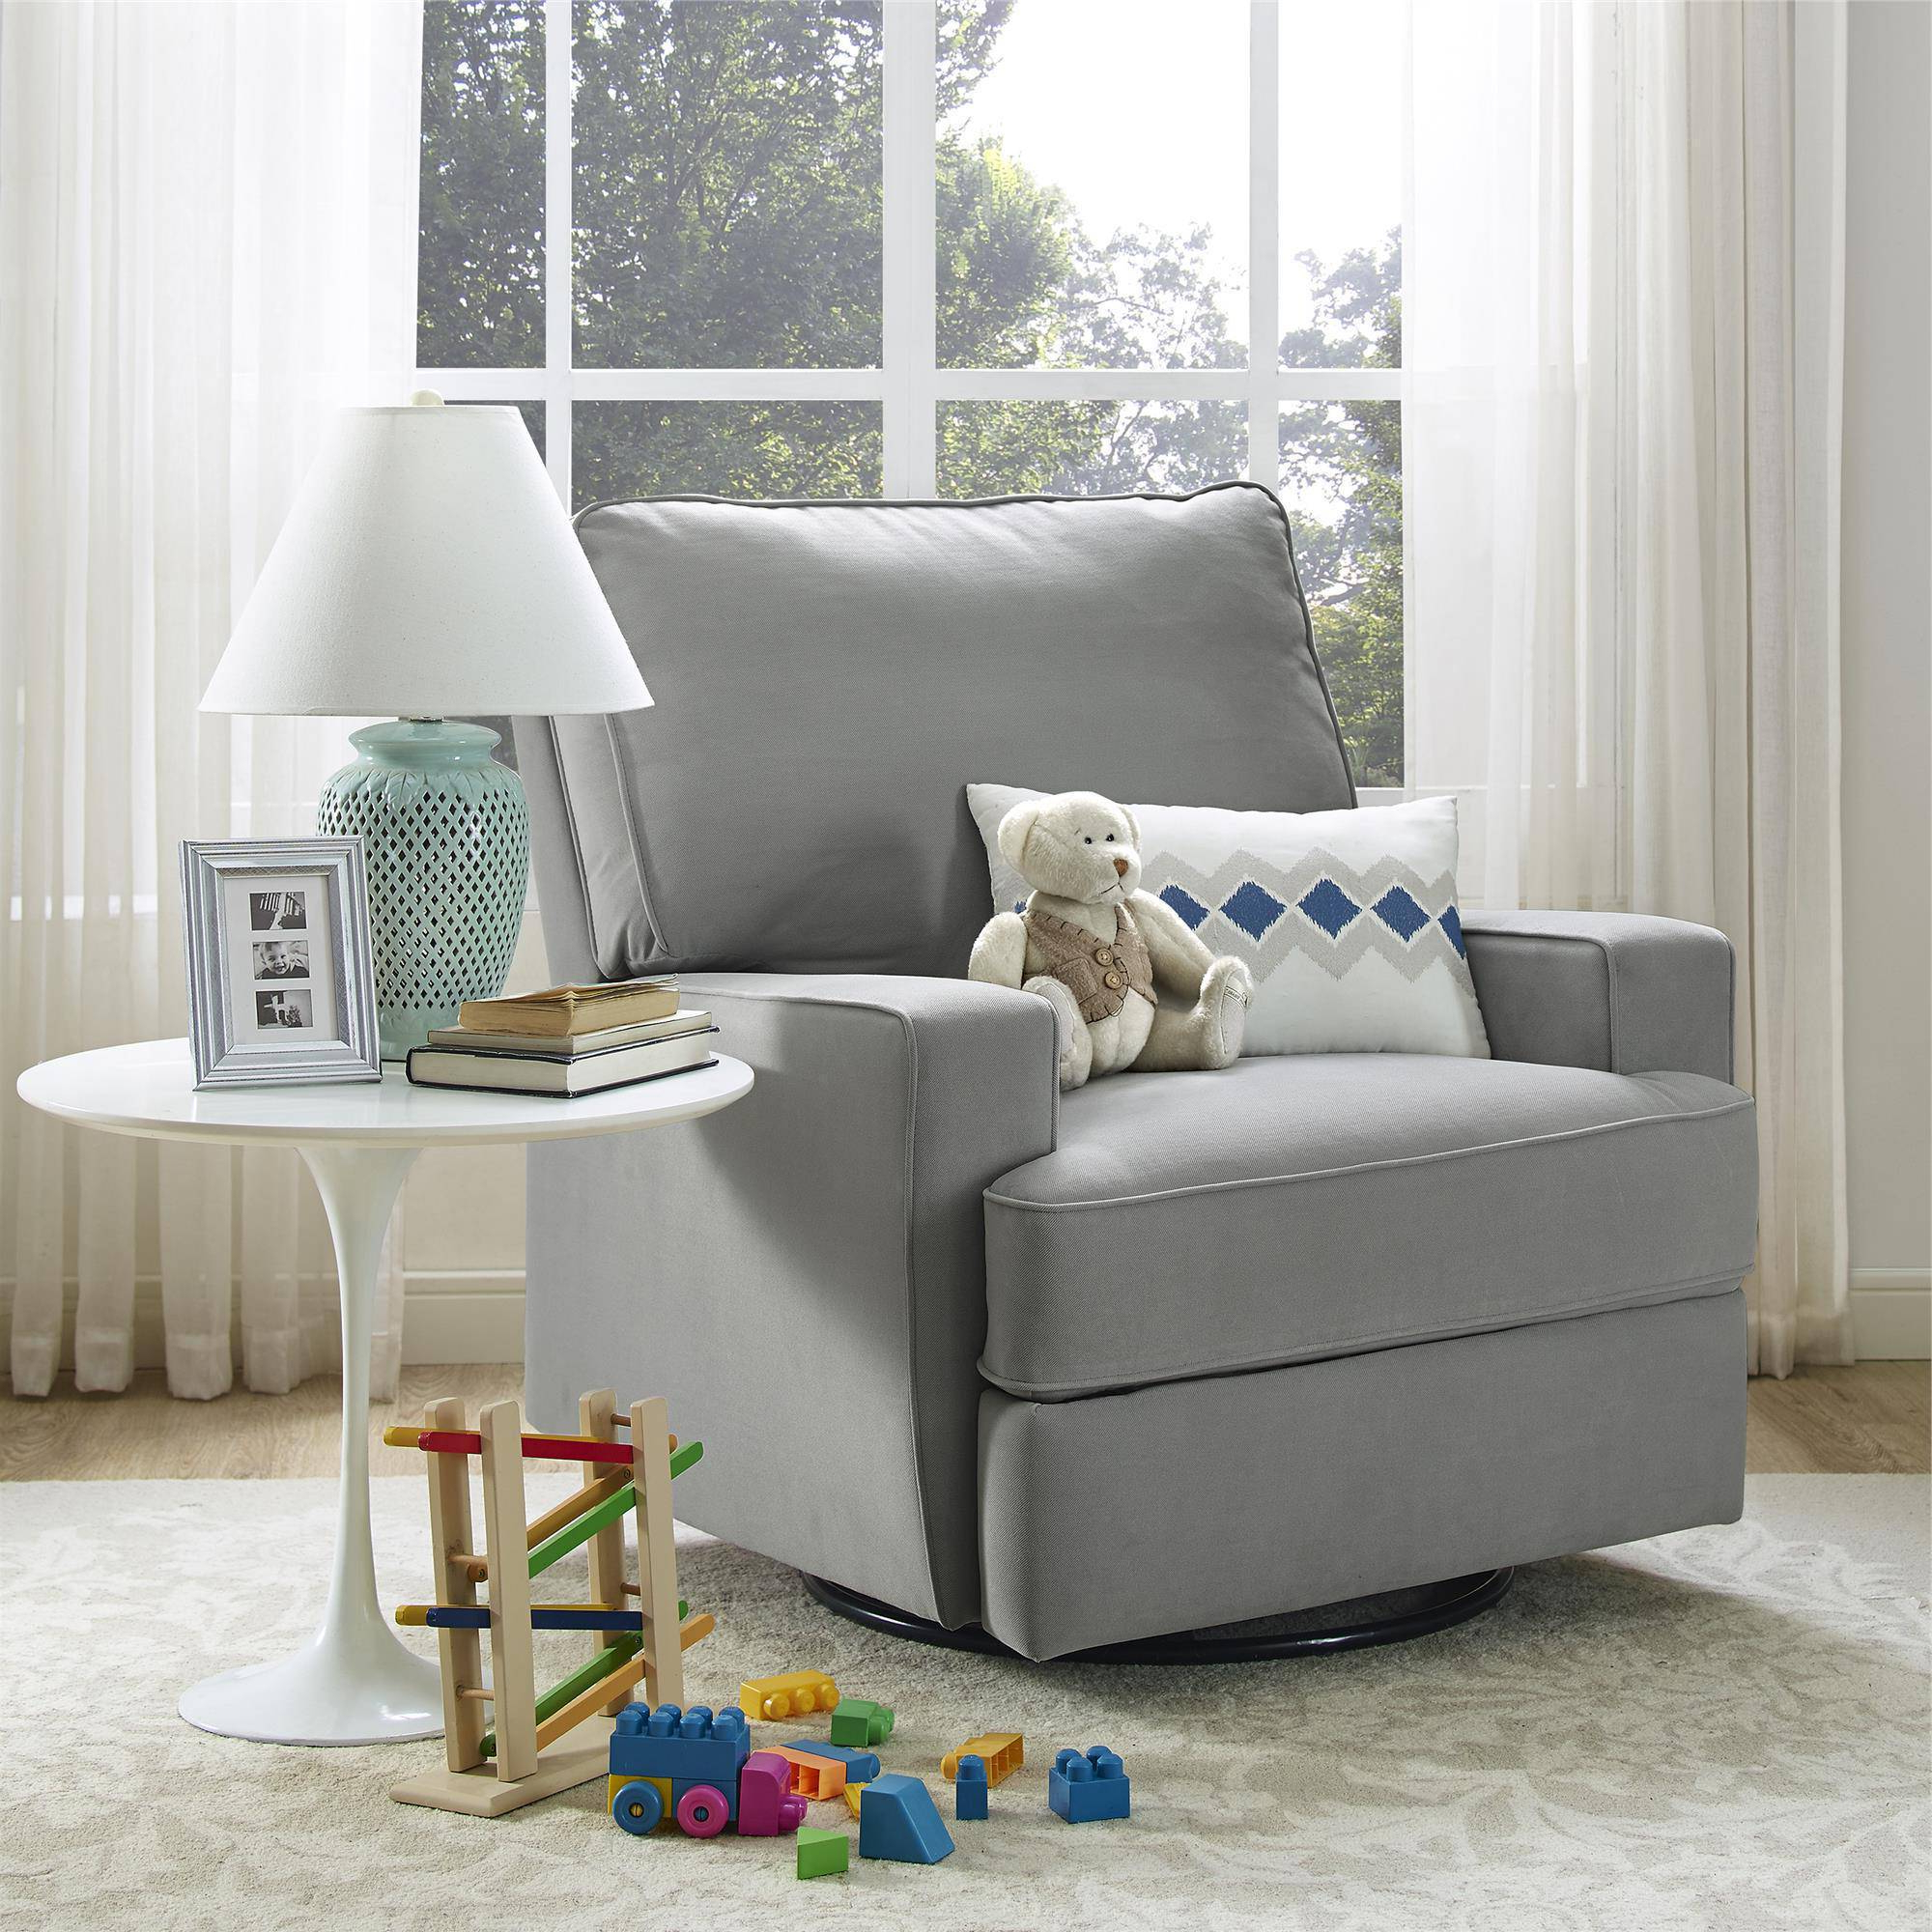 Furniture: Magnificent Walmart Glider Rocker For Fabulous Home For Recent Abbey Swivel Glider Recliners (View 15 of 20)